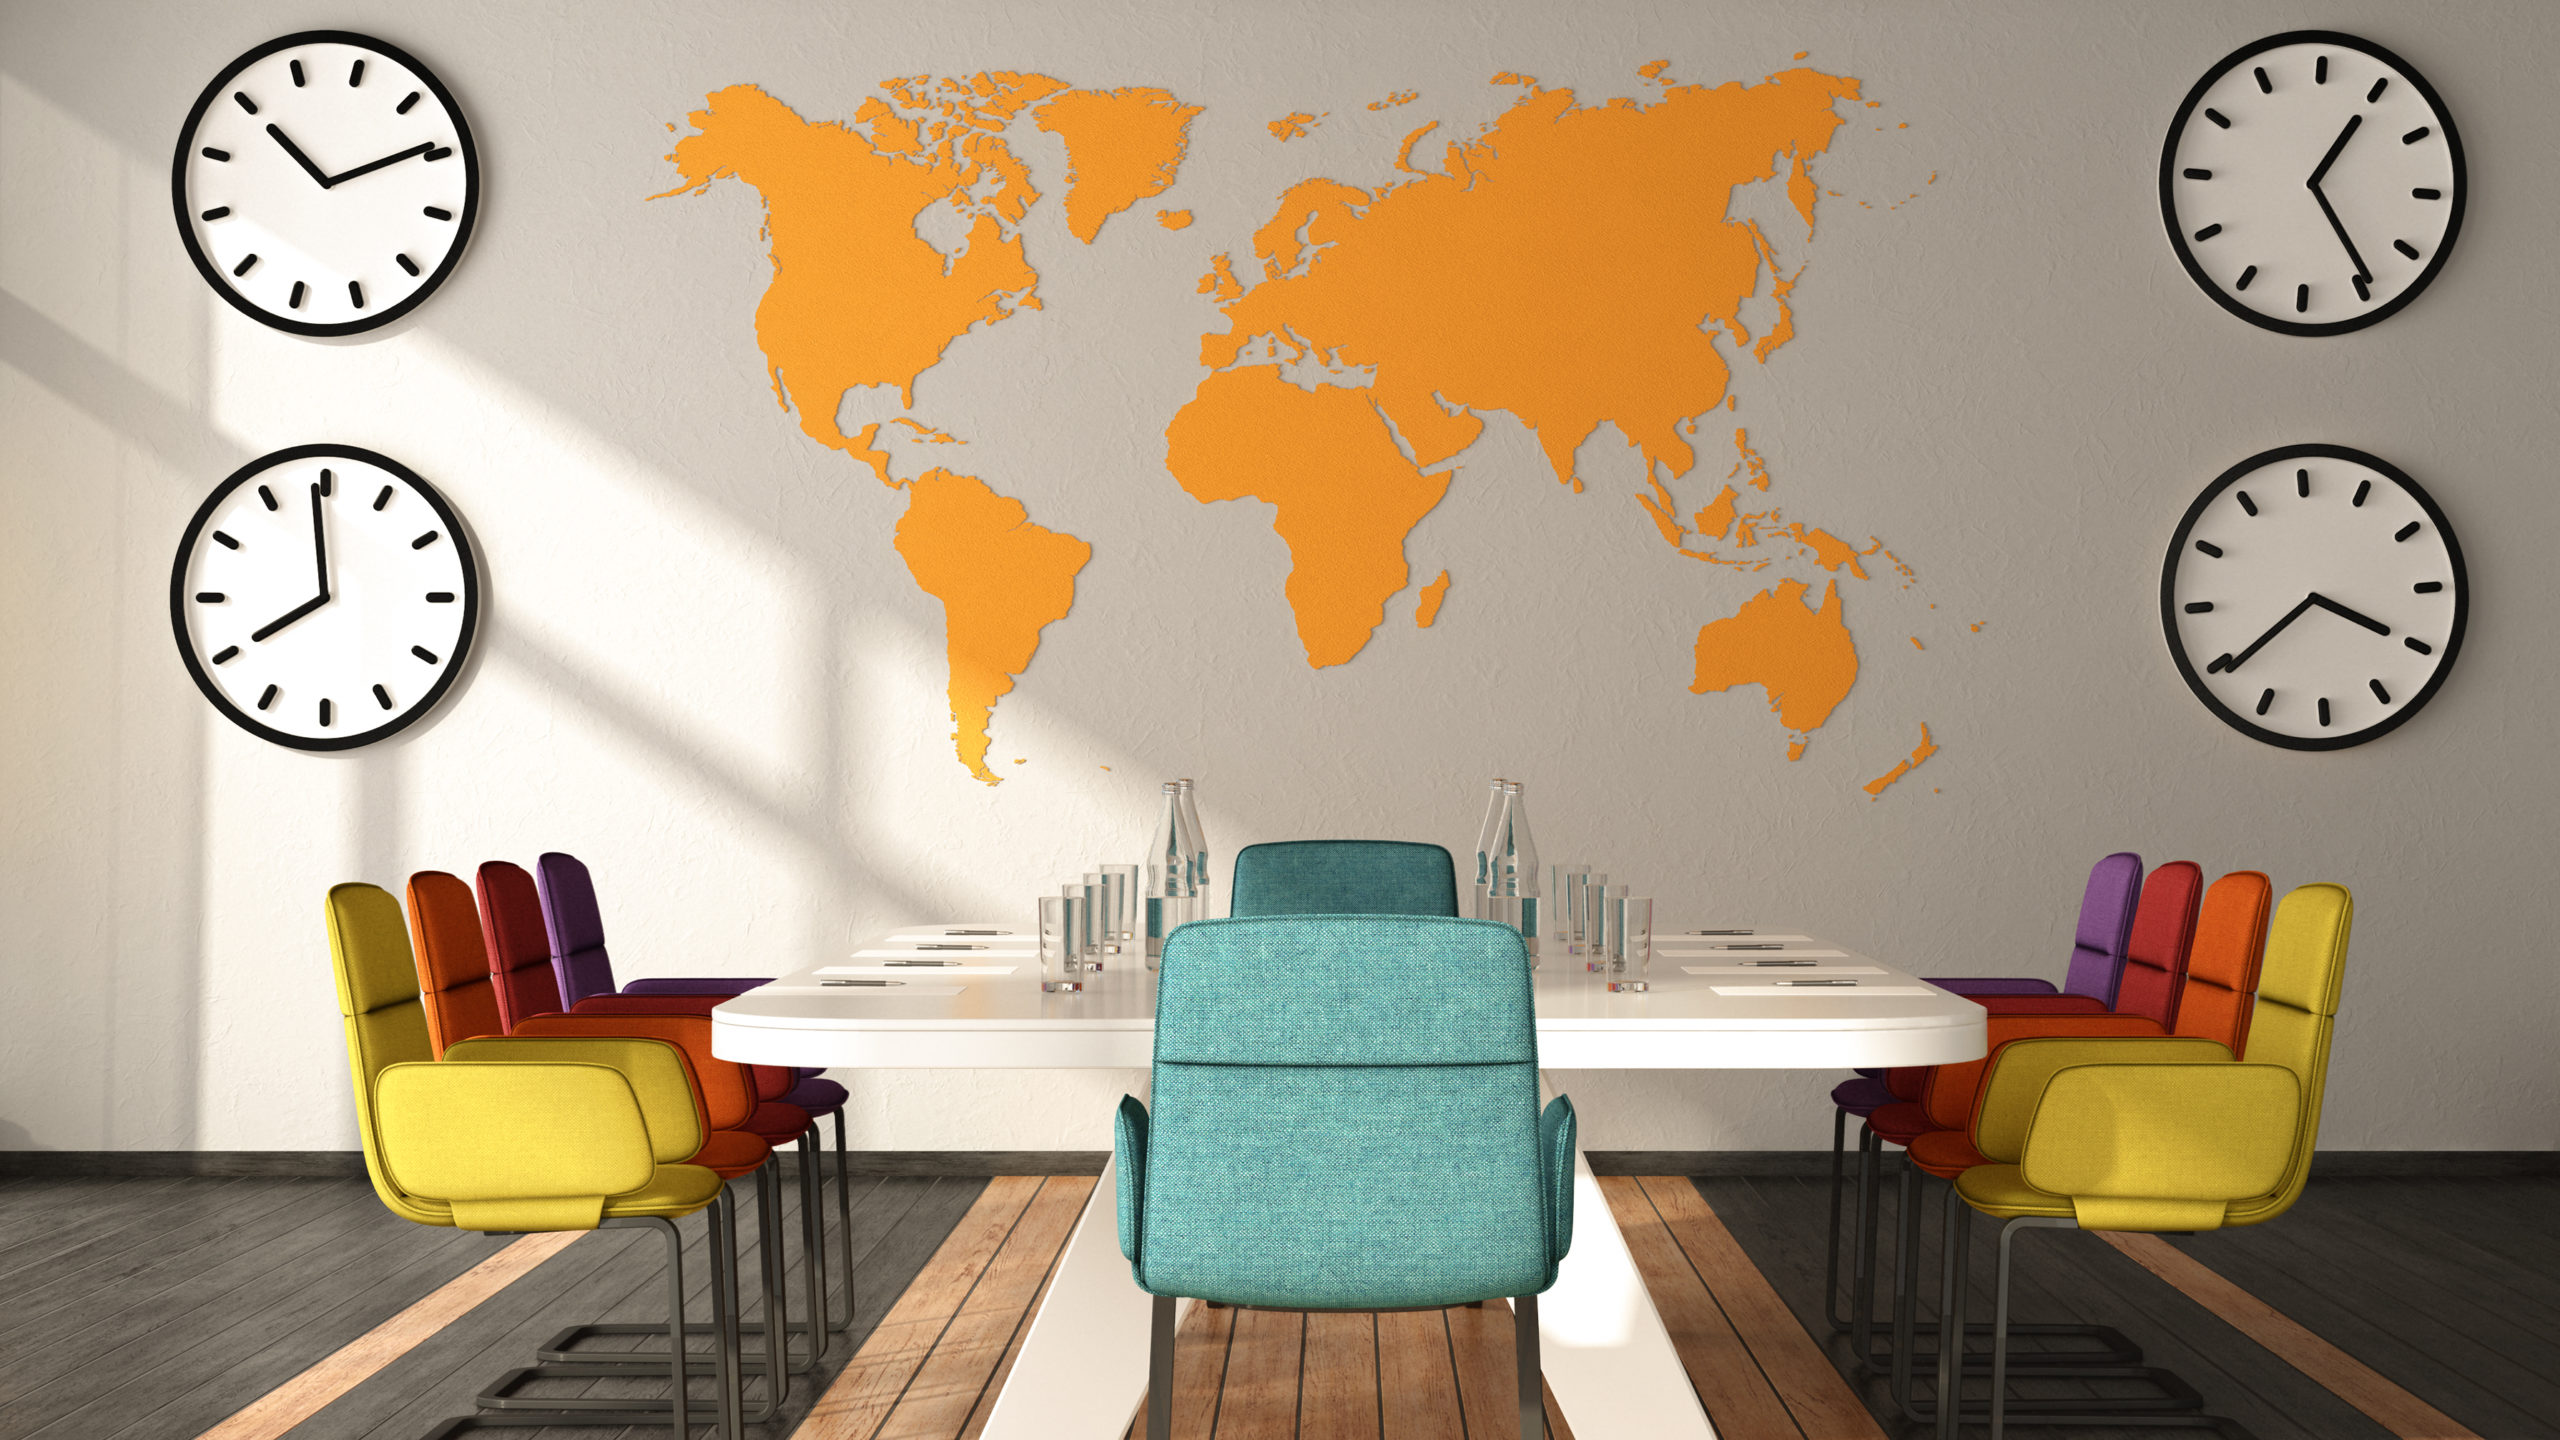 Front view of colorful meeting room with world map on background 3D Rendering